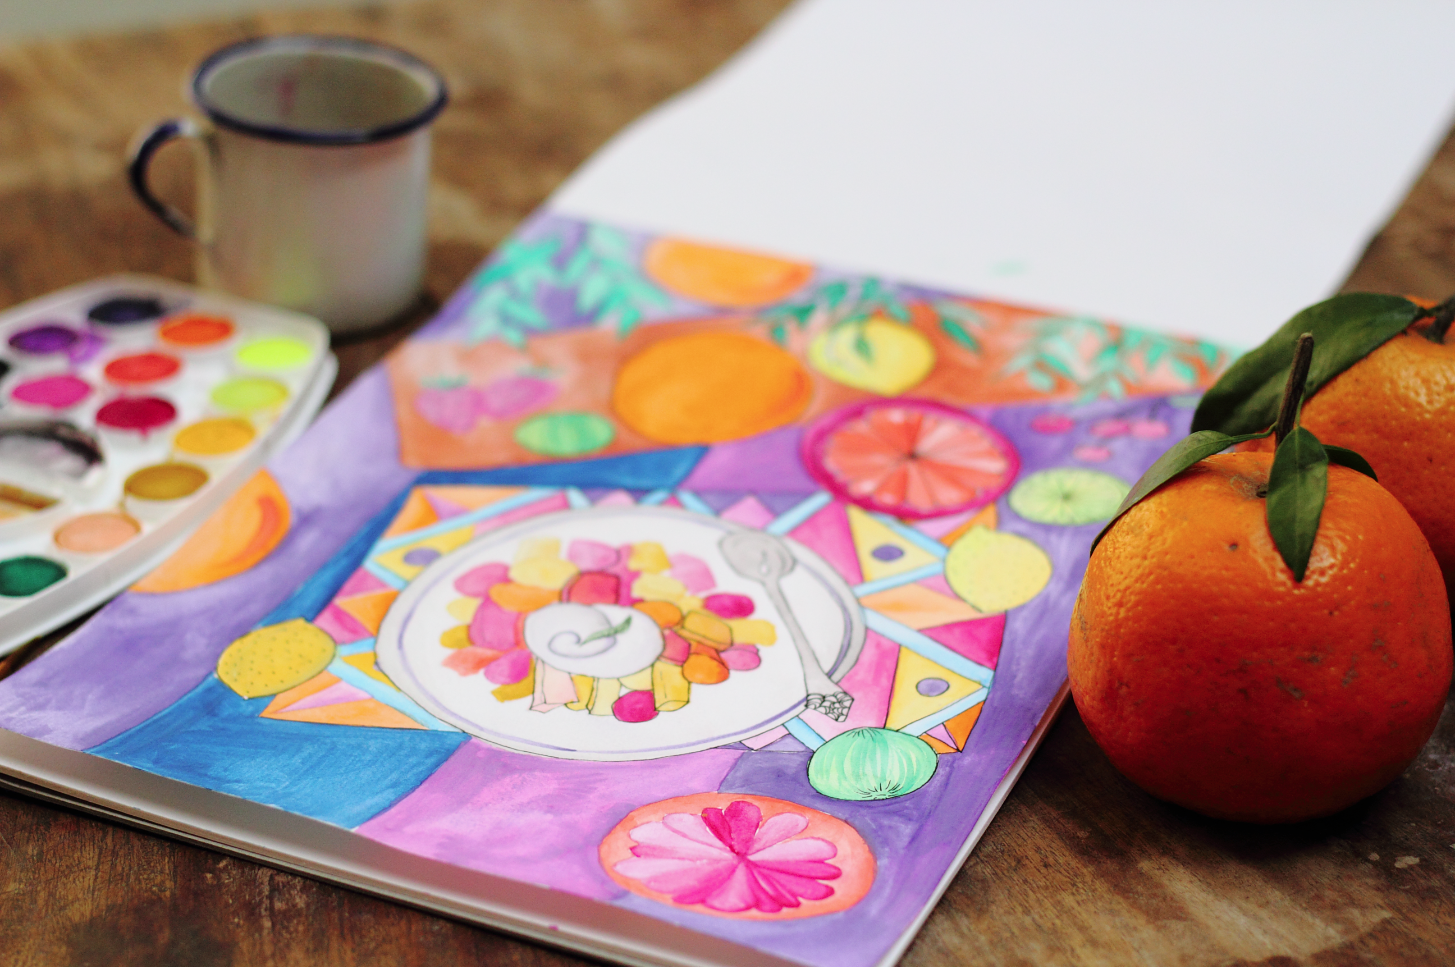 fruit salad with oranges drawing